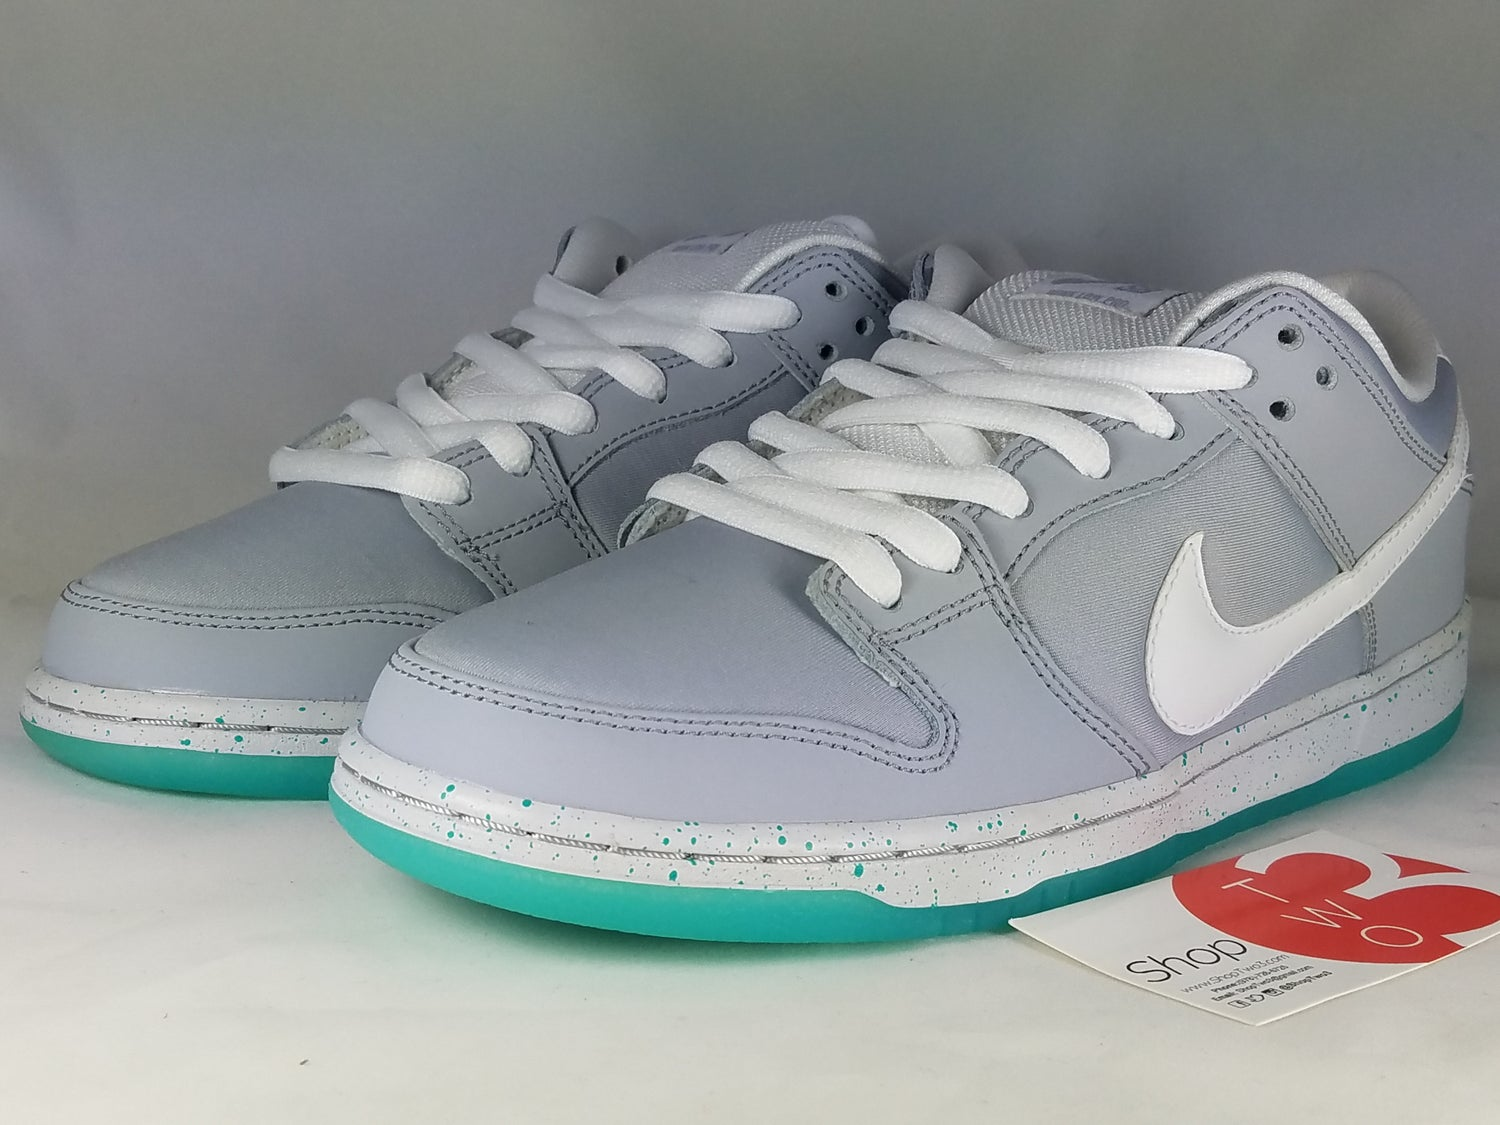 online store acdf1 4fa54 Image of Nike Dunk low Premium SB Mcfly